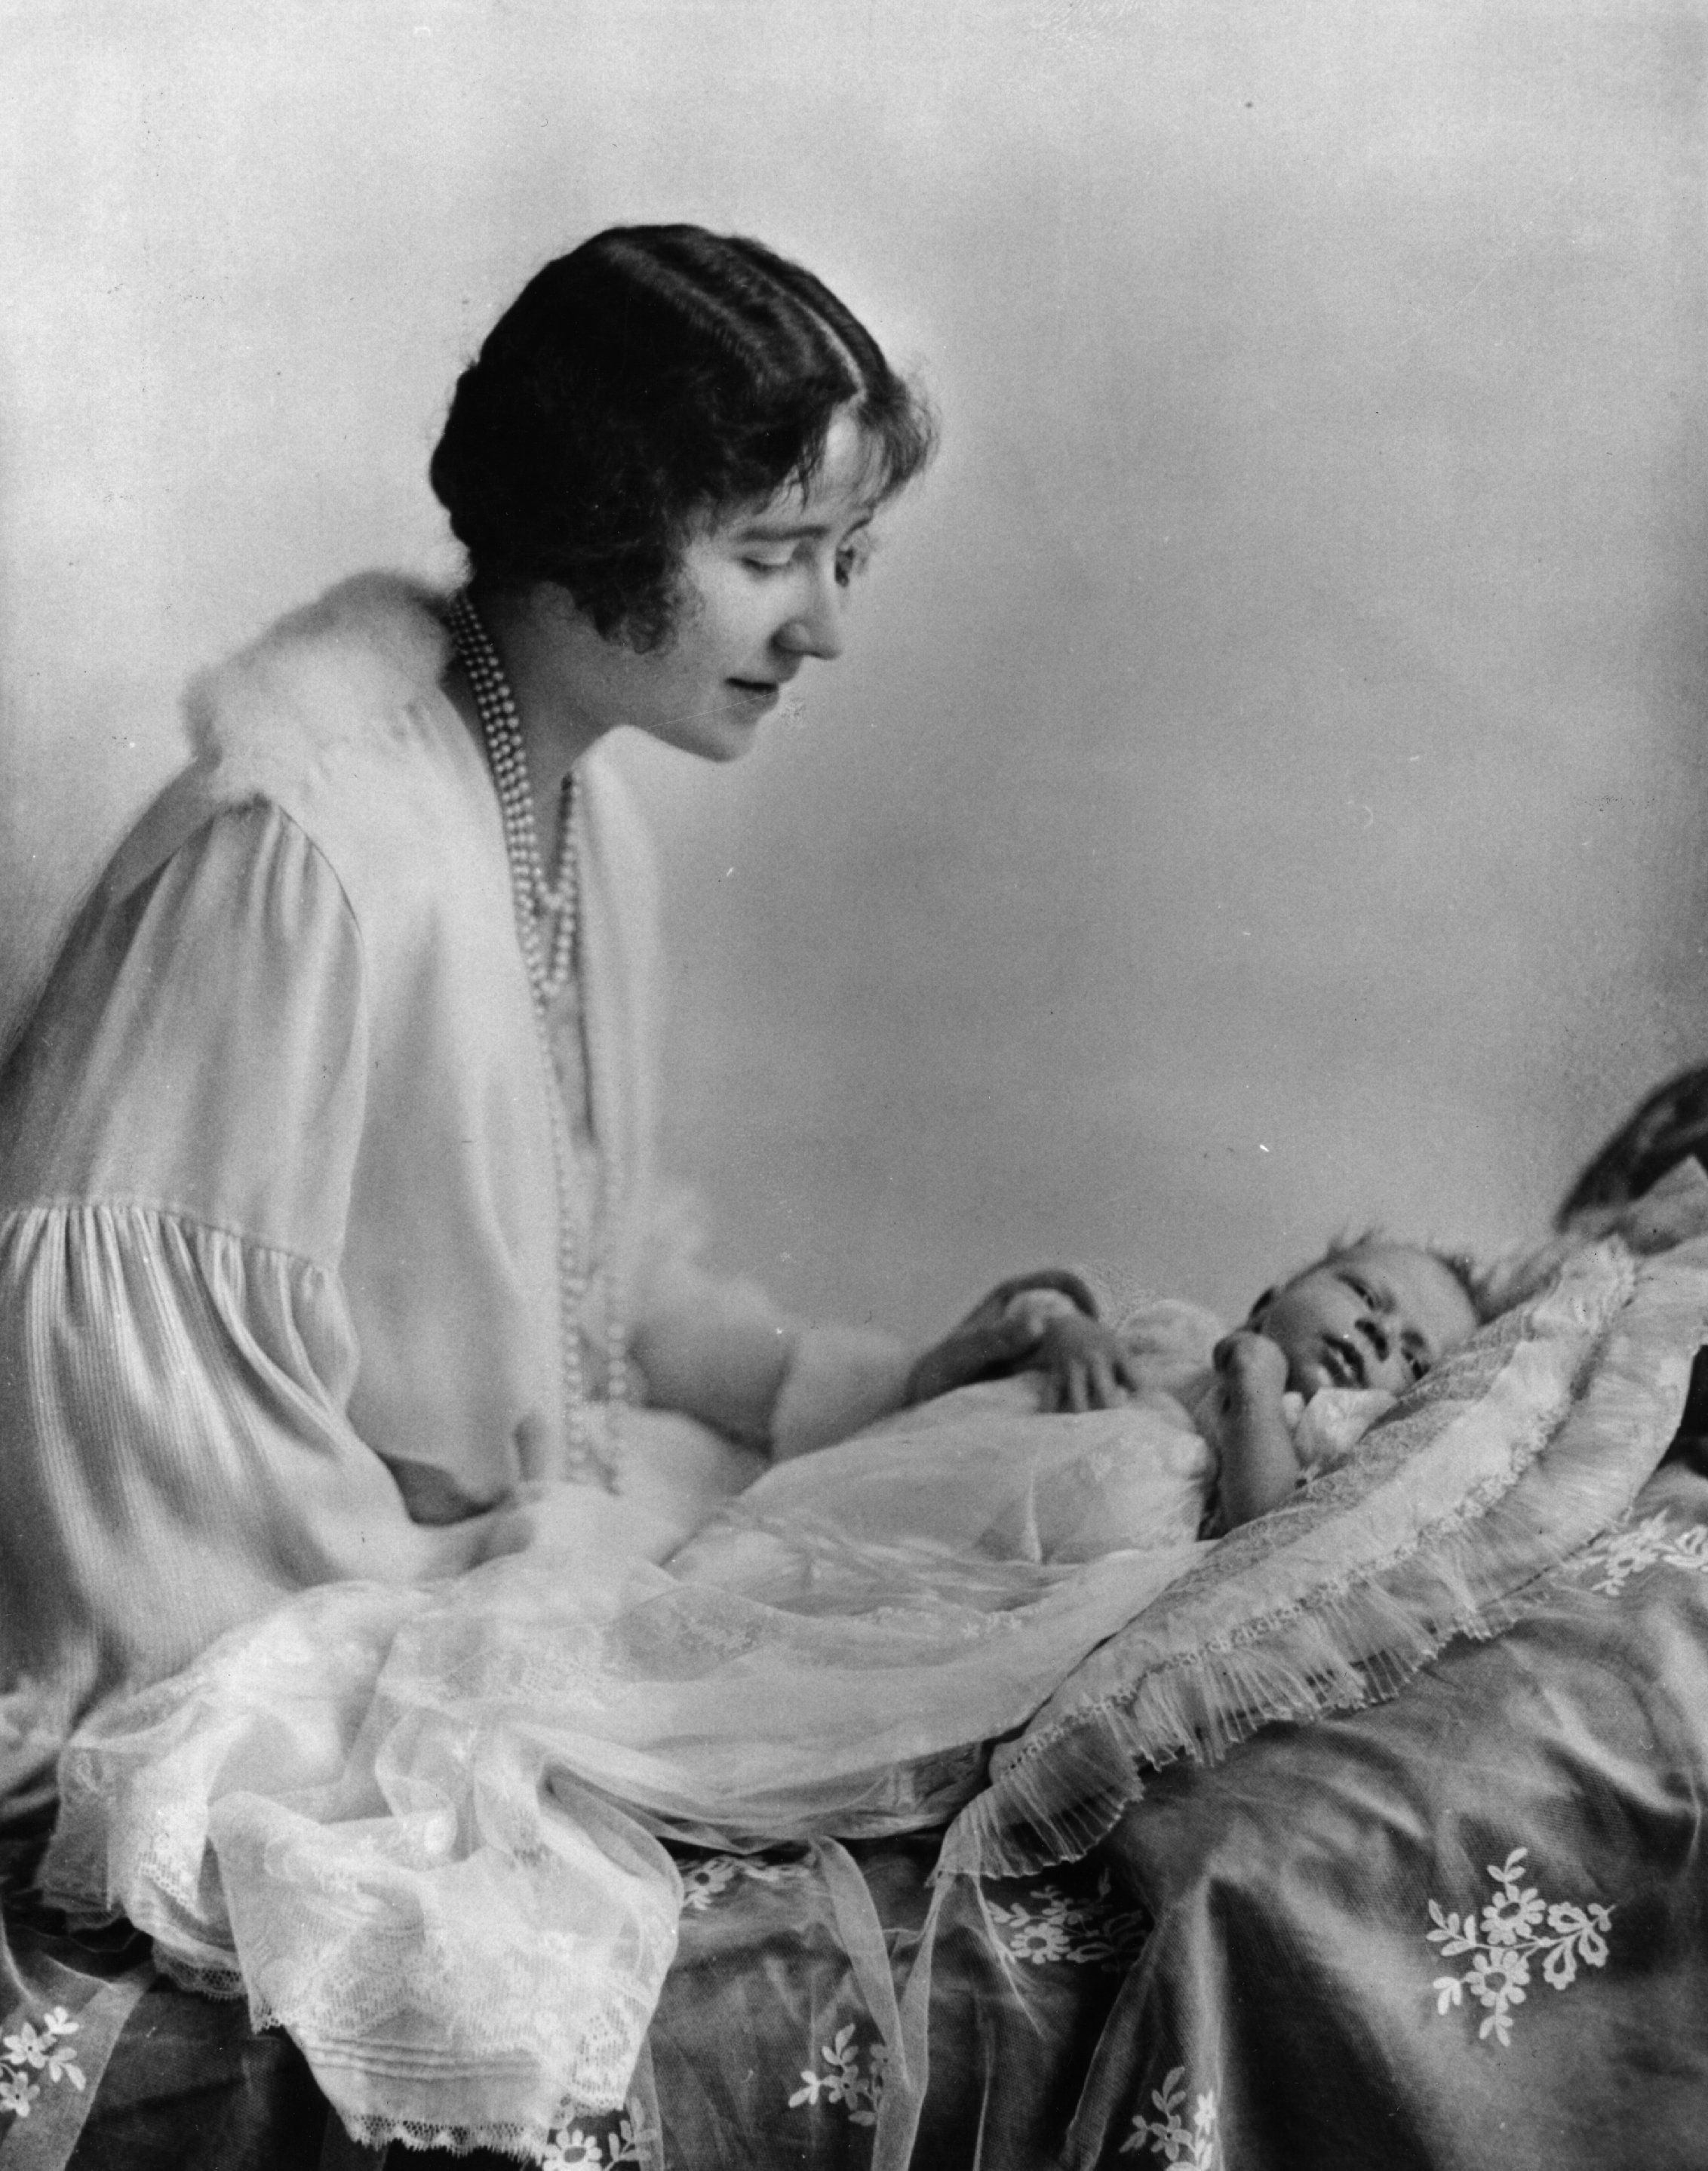 On April 21, 1926, Queen Elizabeth II (then Princess Elizabeth) was born. In this photo, she shares a loving moment with her